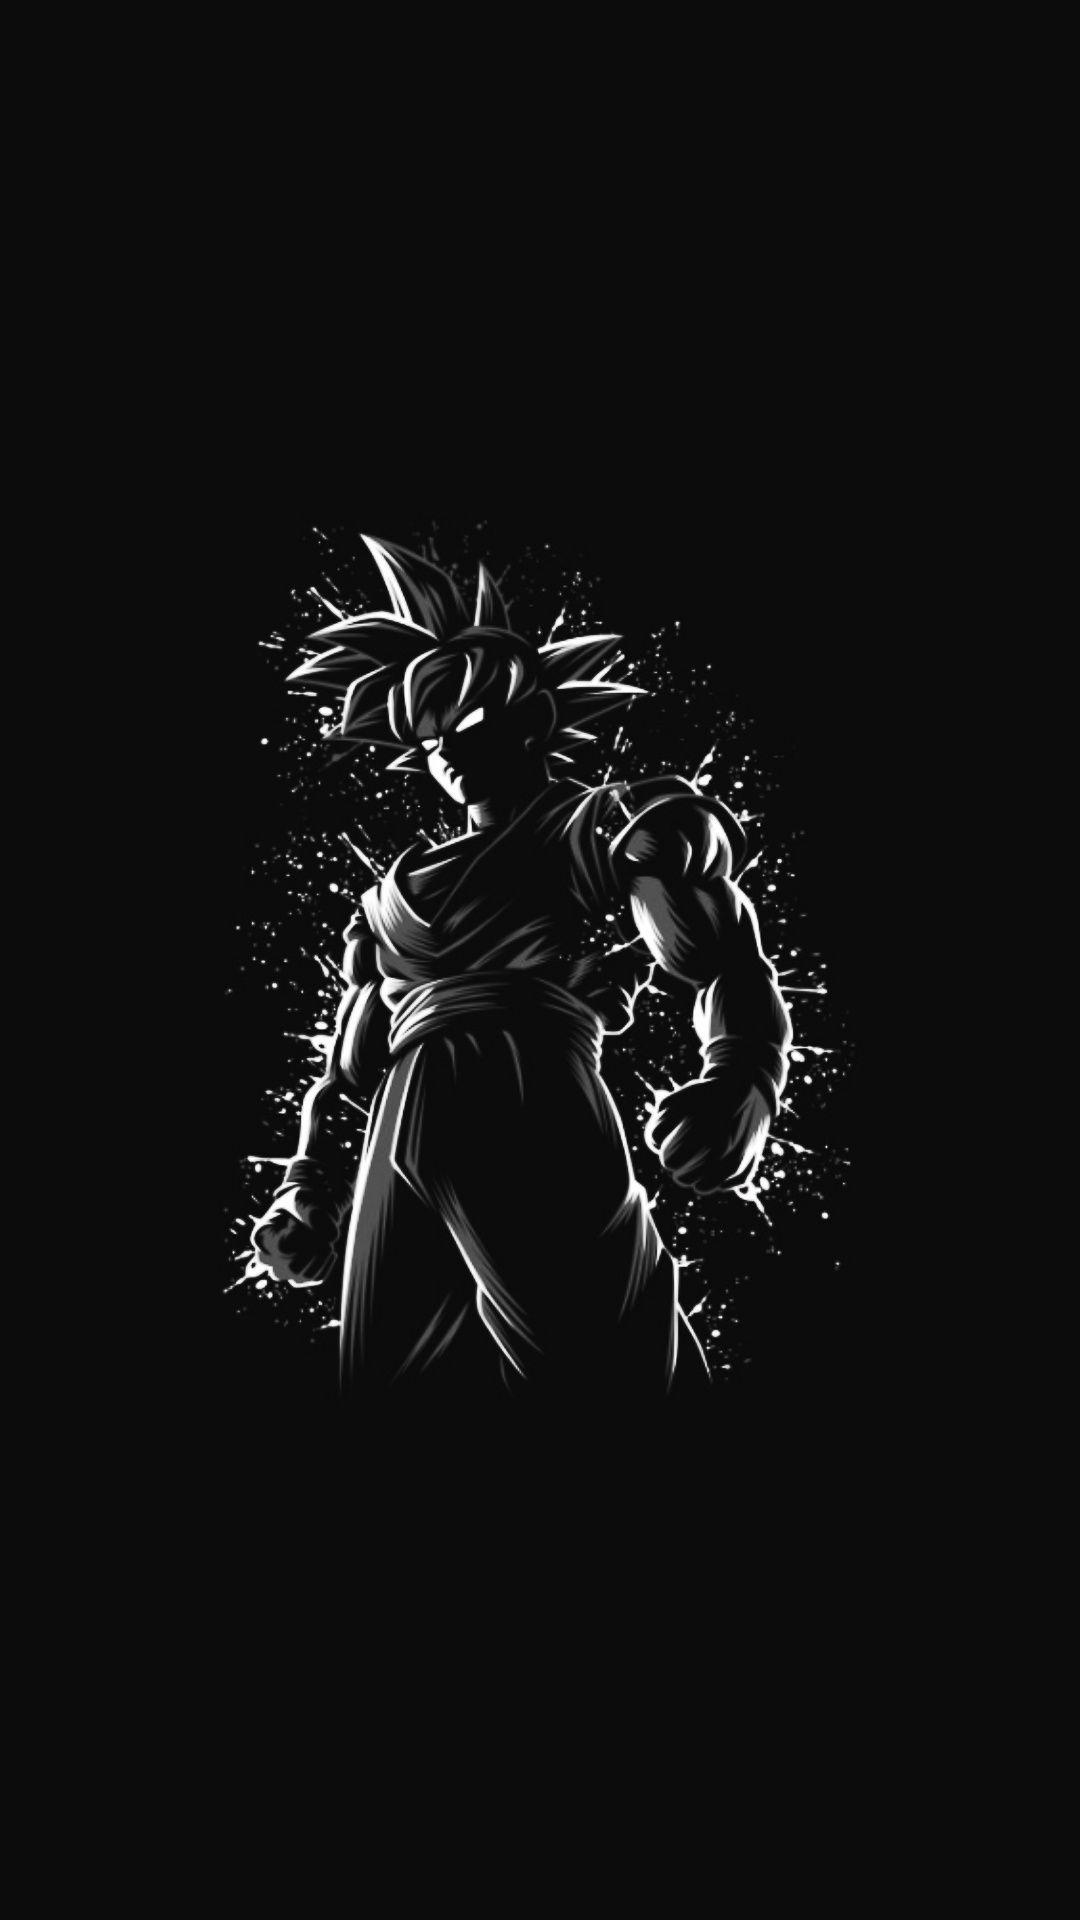 Black Amoled Anime Wallpapers Wallpaper Cave